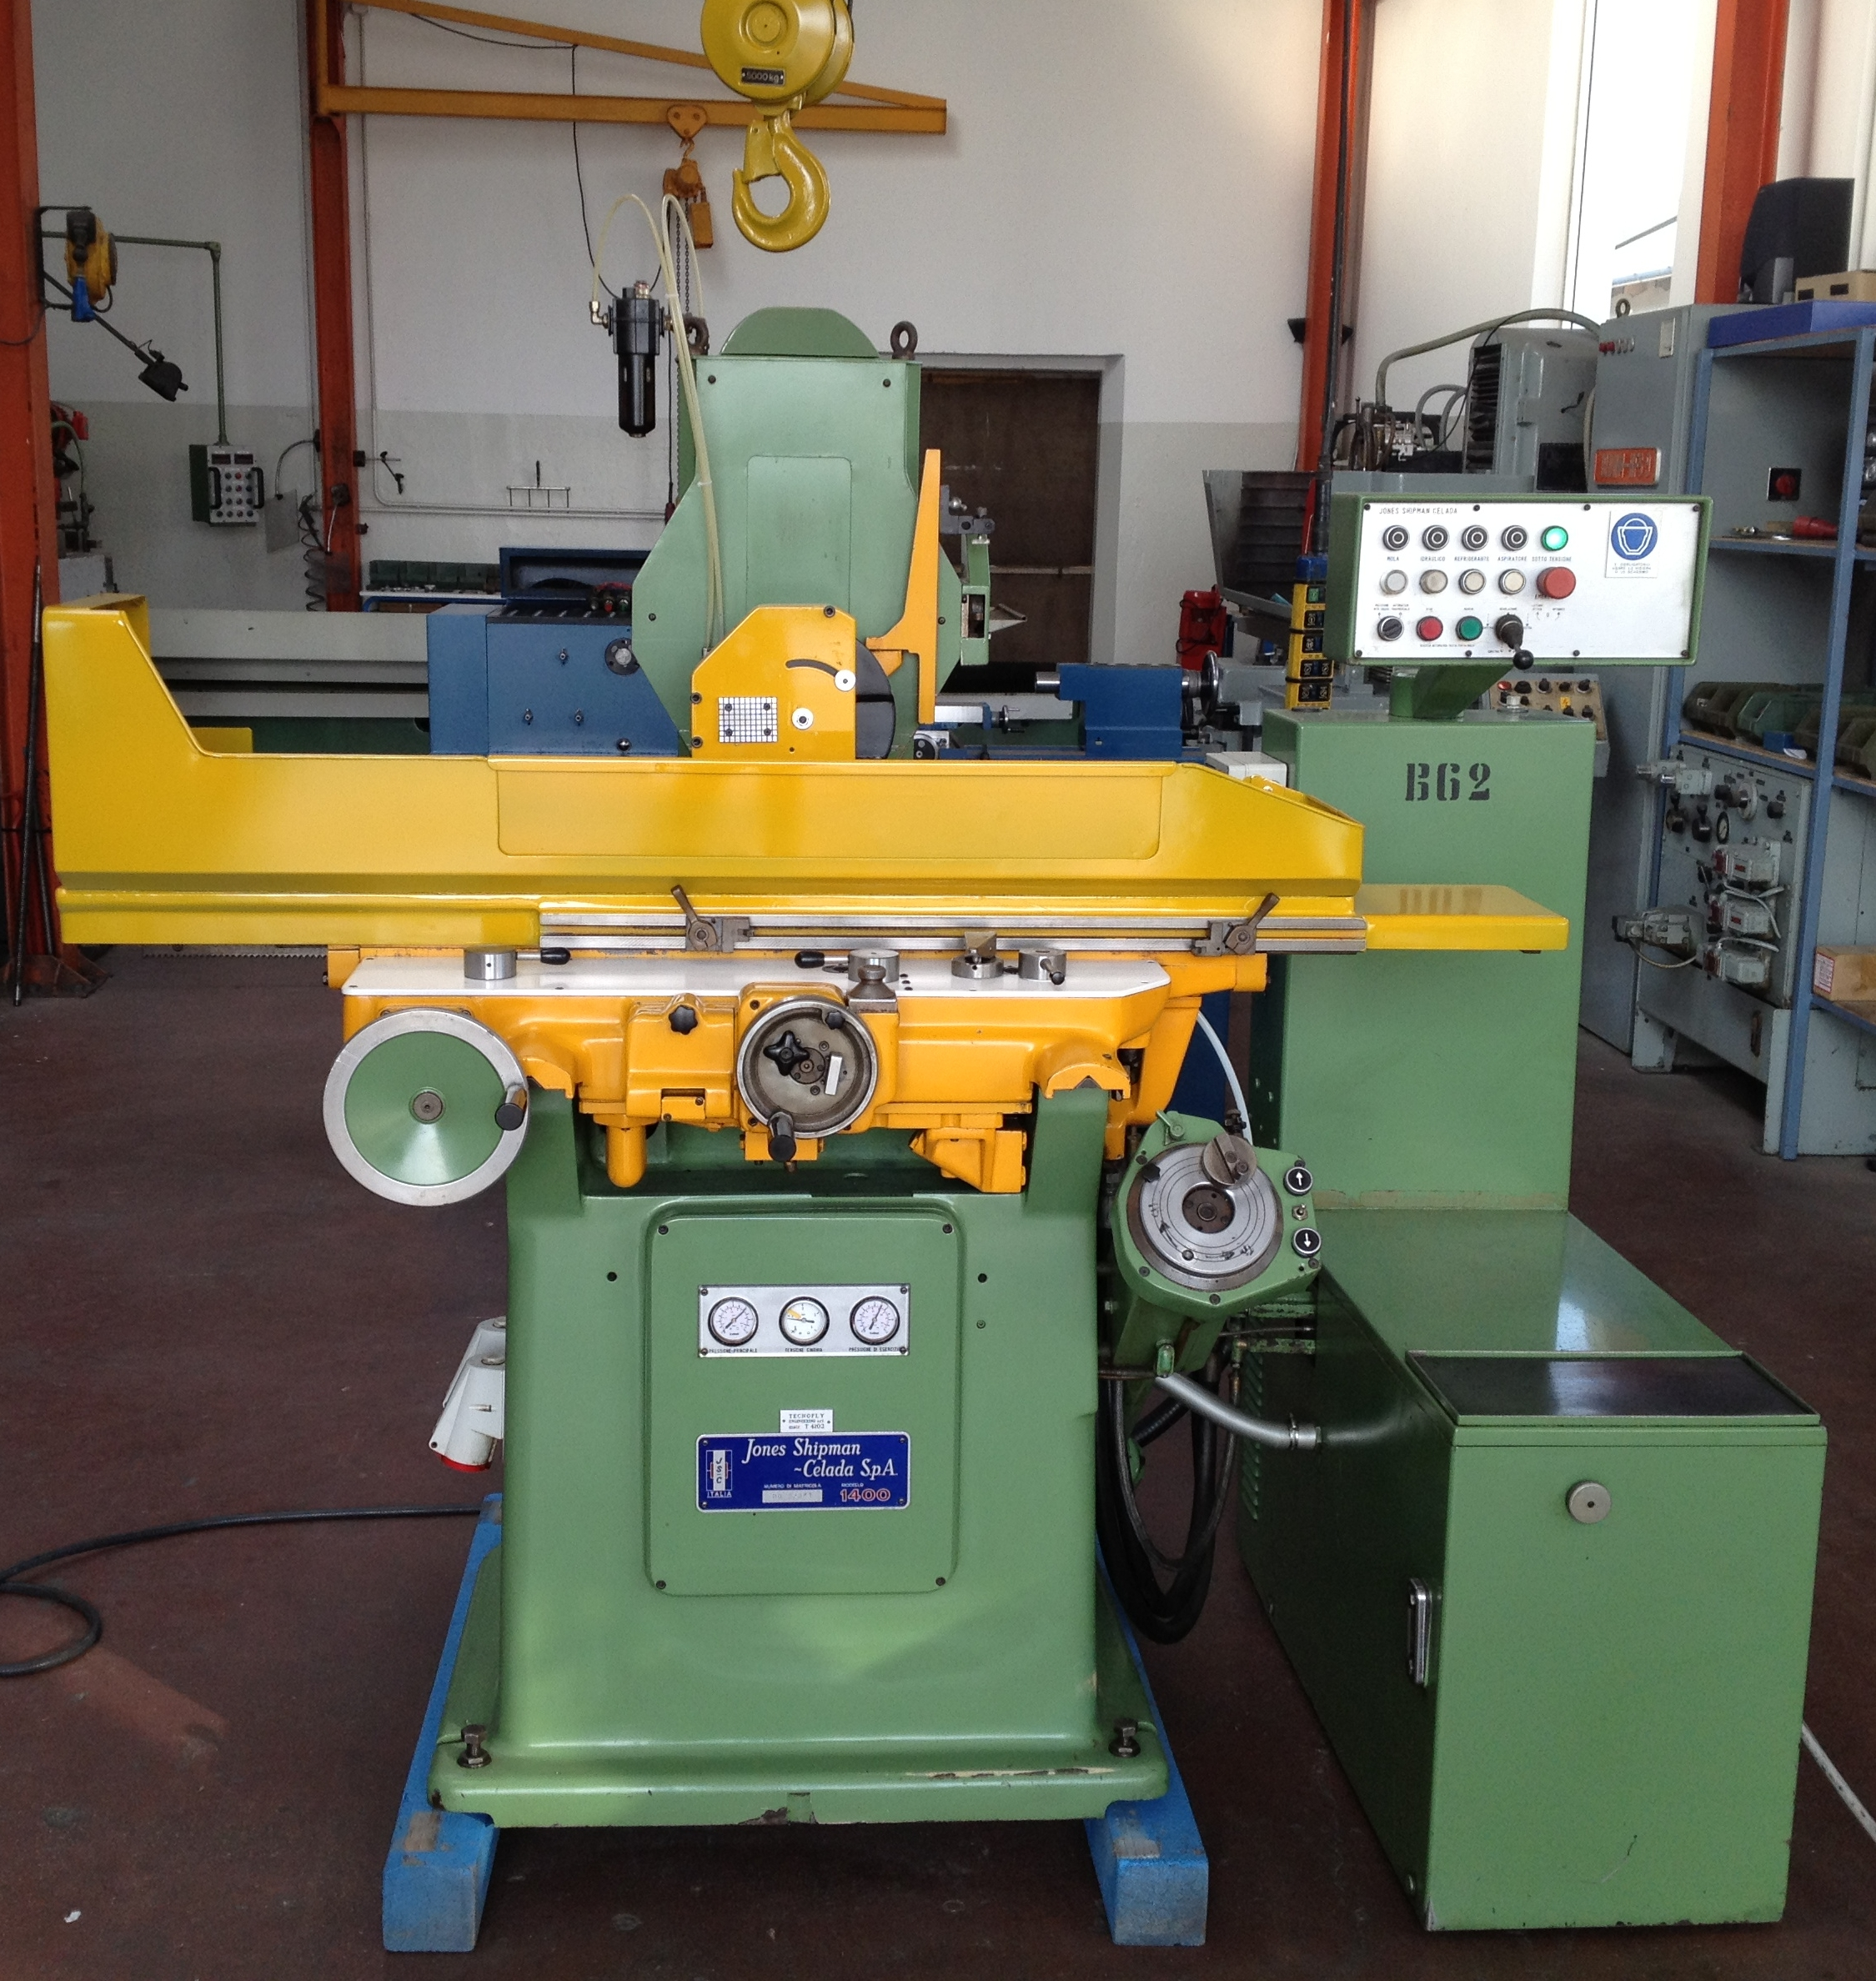 TANGENTIAL GRINDING MACHINE JONES SHIPMAN SERIES 1400 USED RECONDITIONED